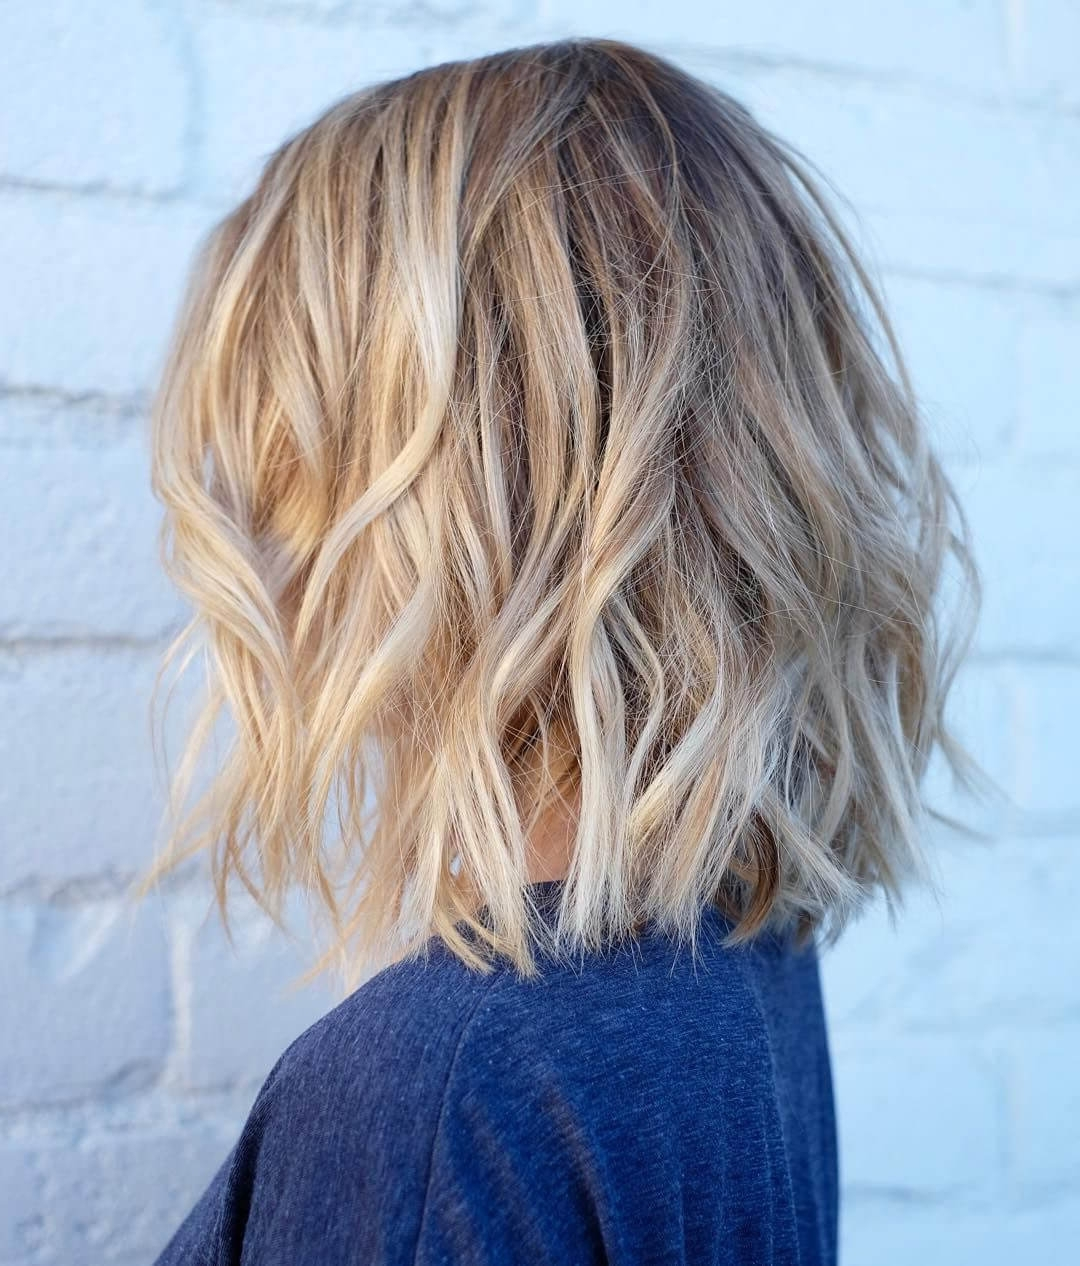 50 Fresh Short Blonde Hair Ideas To Update Your Style In 2018 For Most Up To Date Blonde Pixie Haircuts With Short Angled Layers (View 13 of 15)